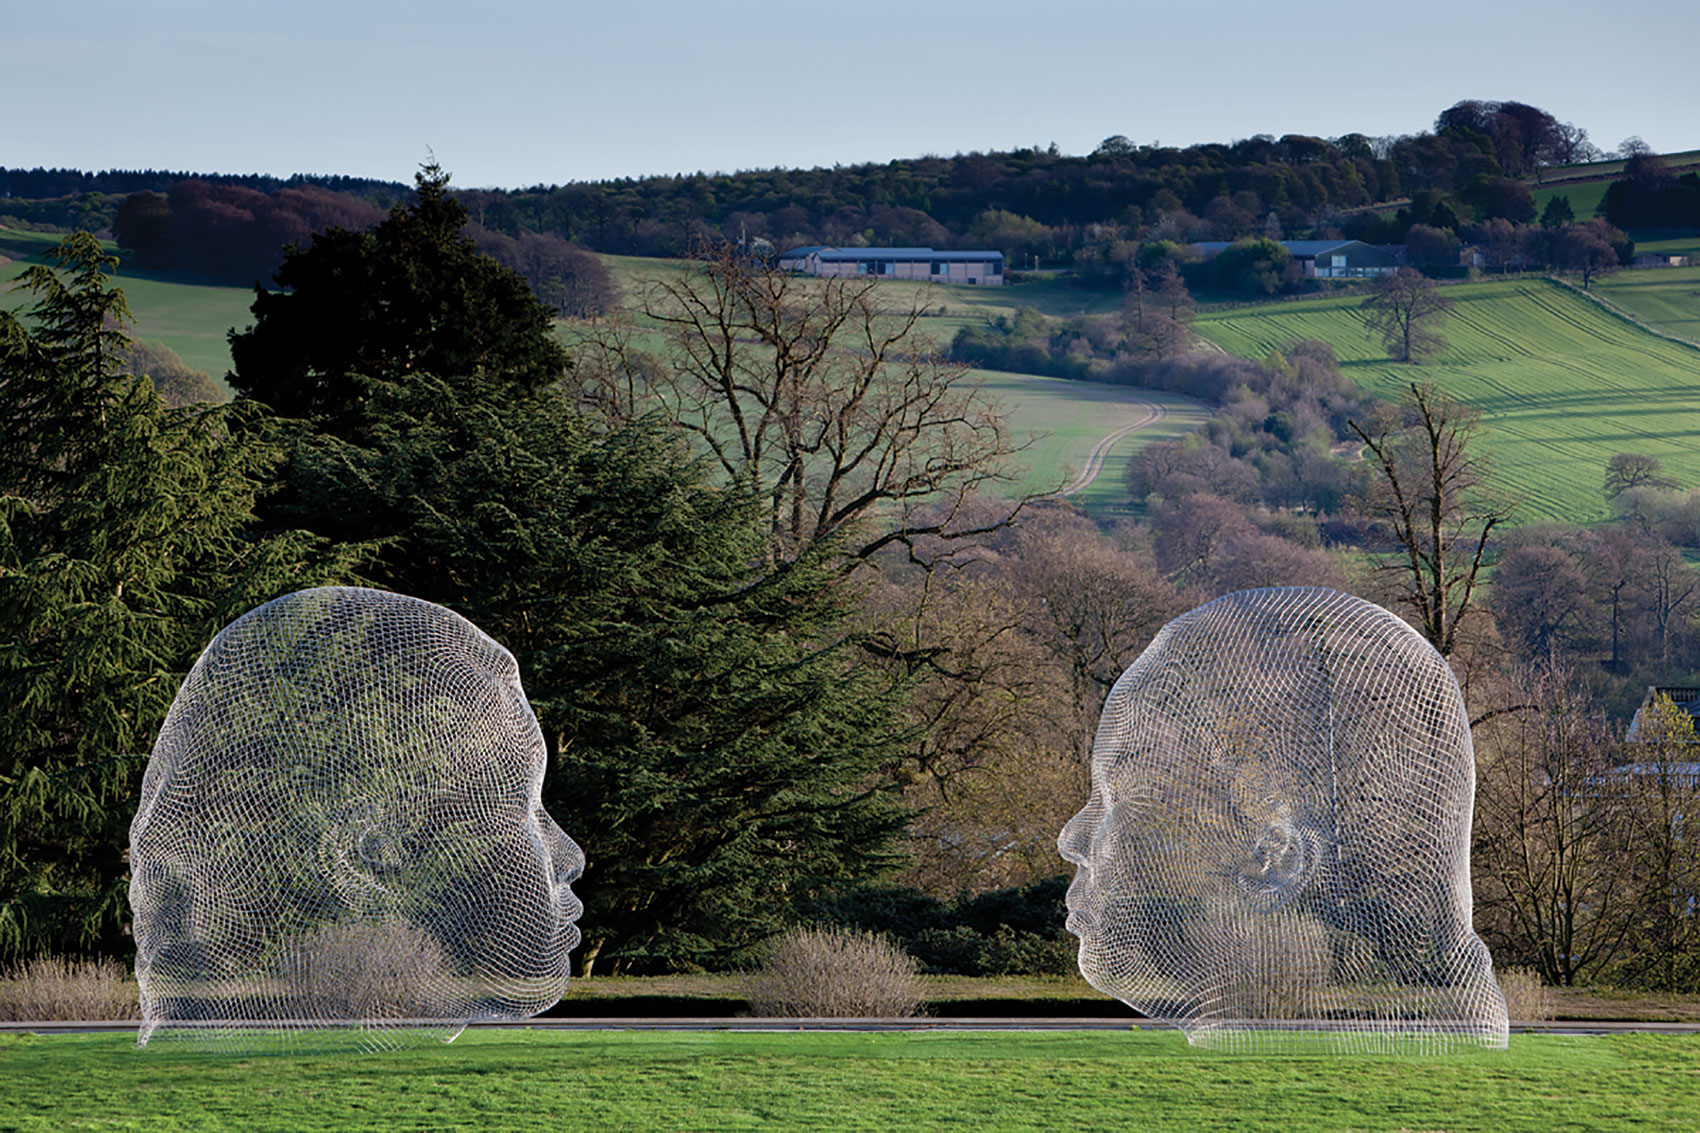 Jaume Plensa sculpture at Yorkshire Sculpture Park - two large heads facing each other